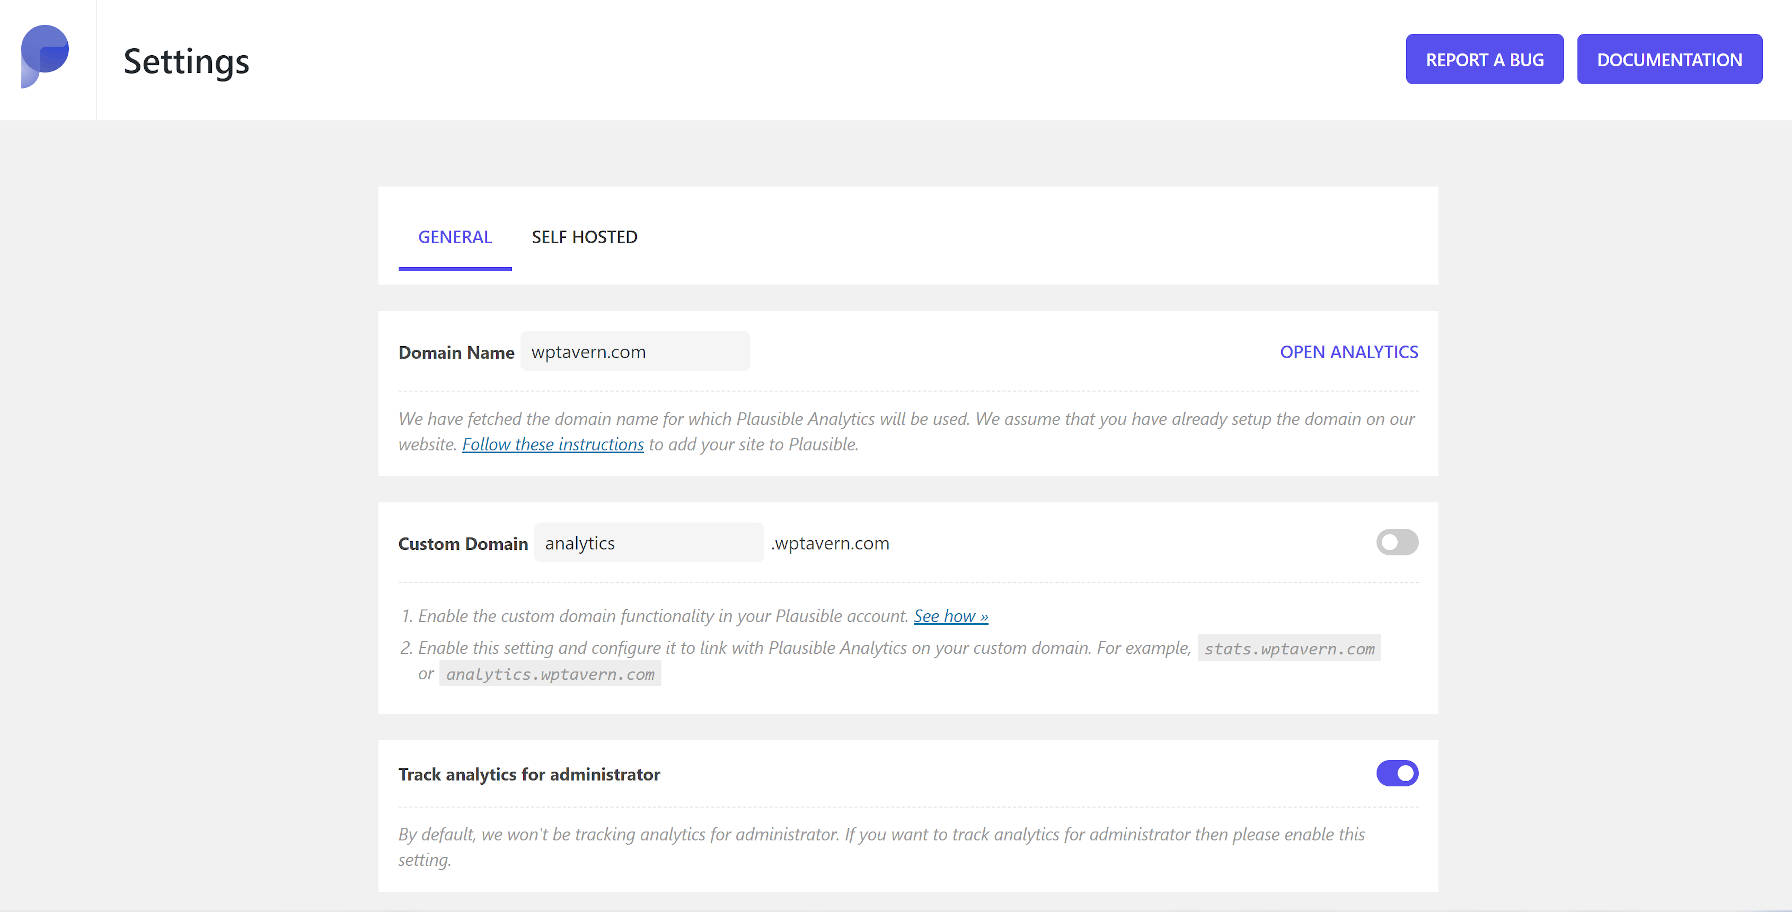 Plausible Analytics WordPress plugin settings screen.